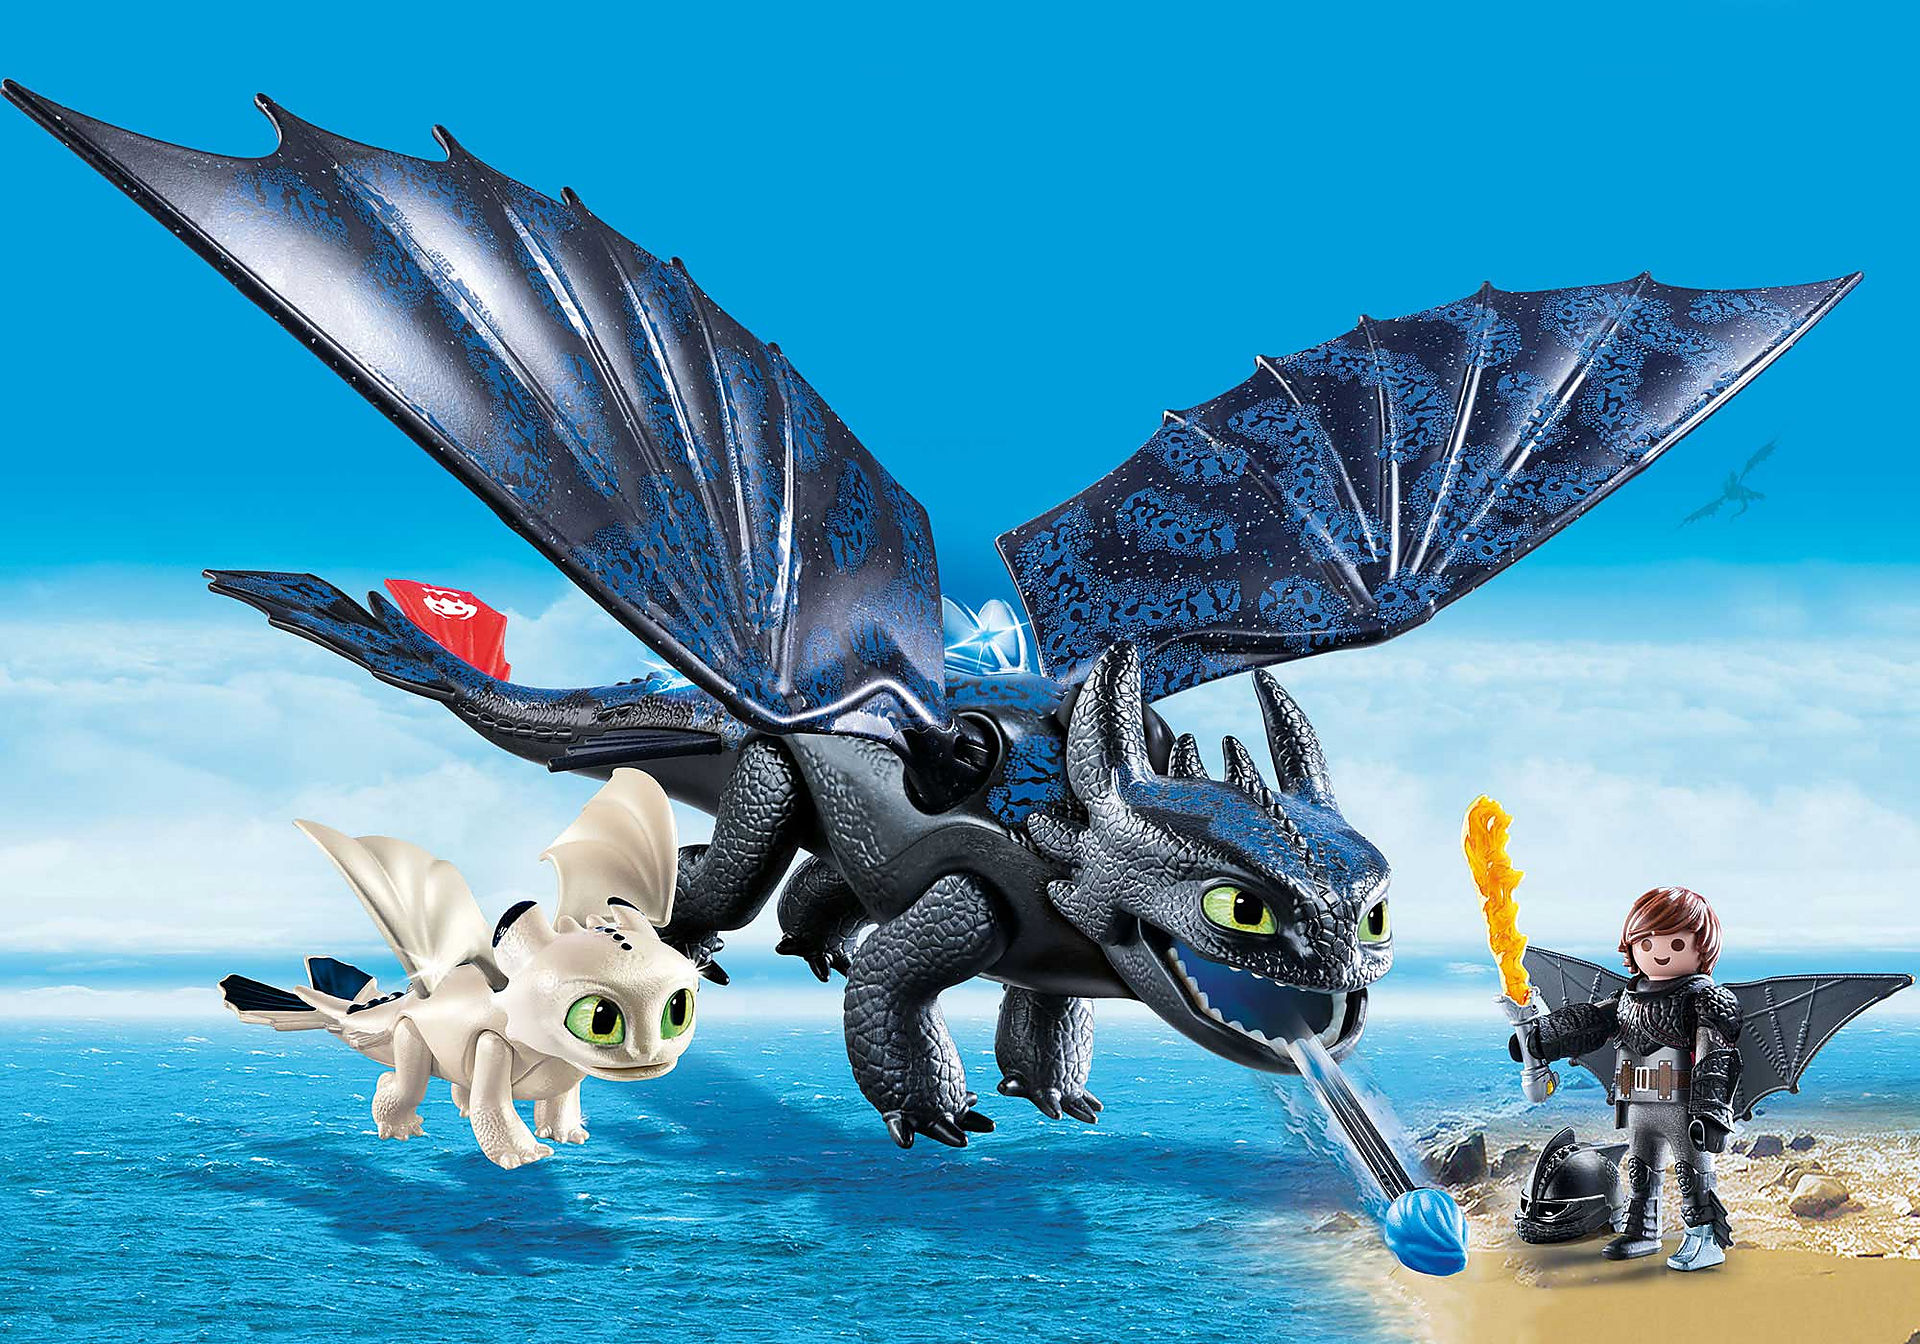 http://media.playmobil.com/i/playmobil/70037_product_detail/Hiccup and Toothless Playset